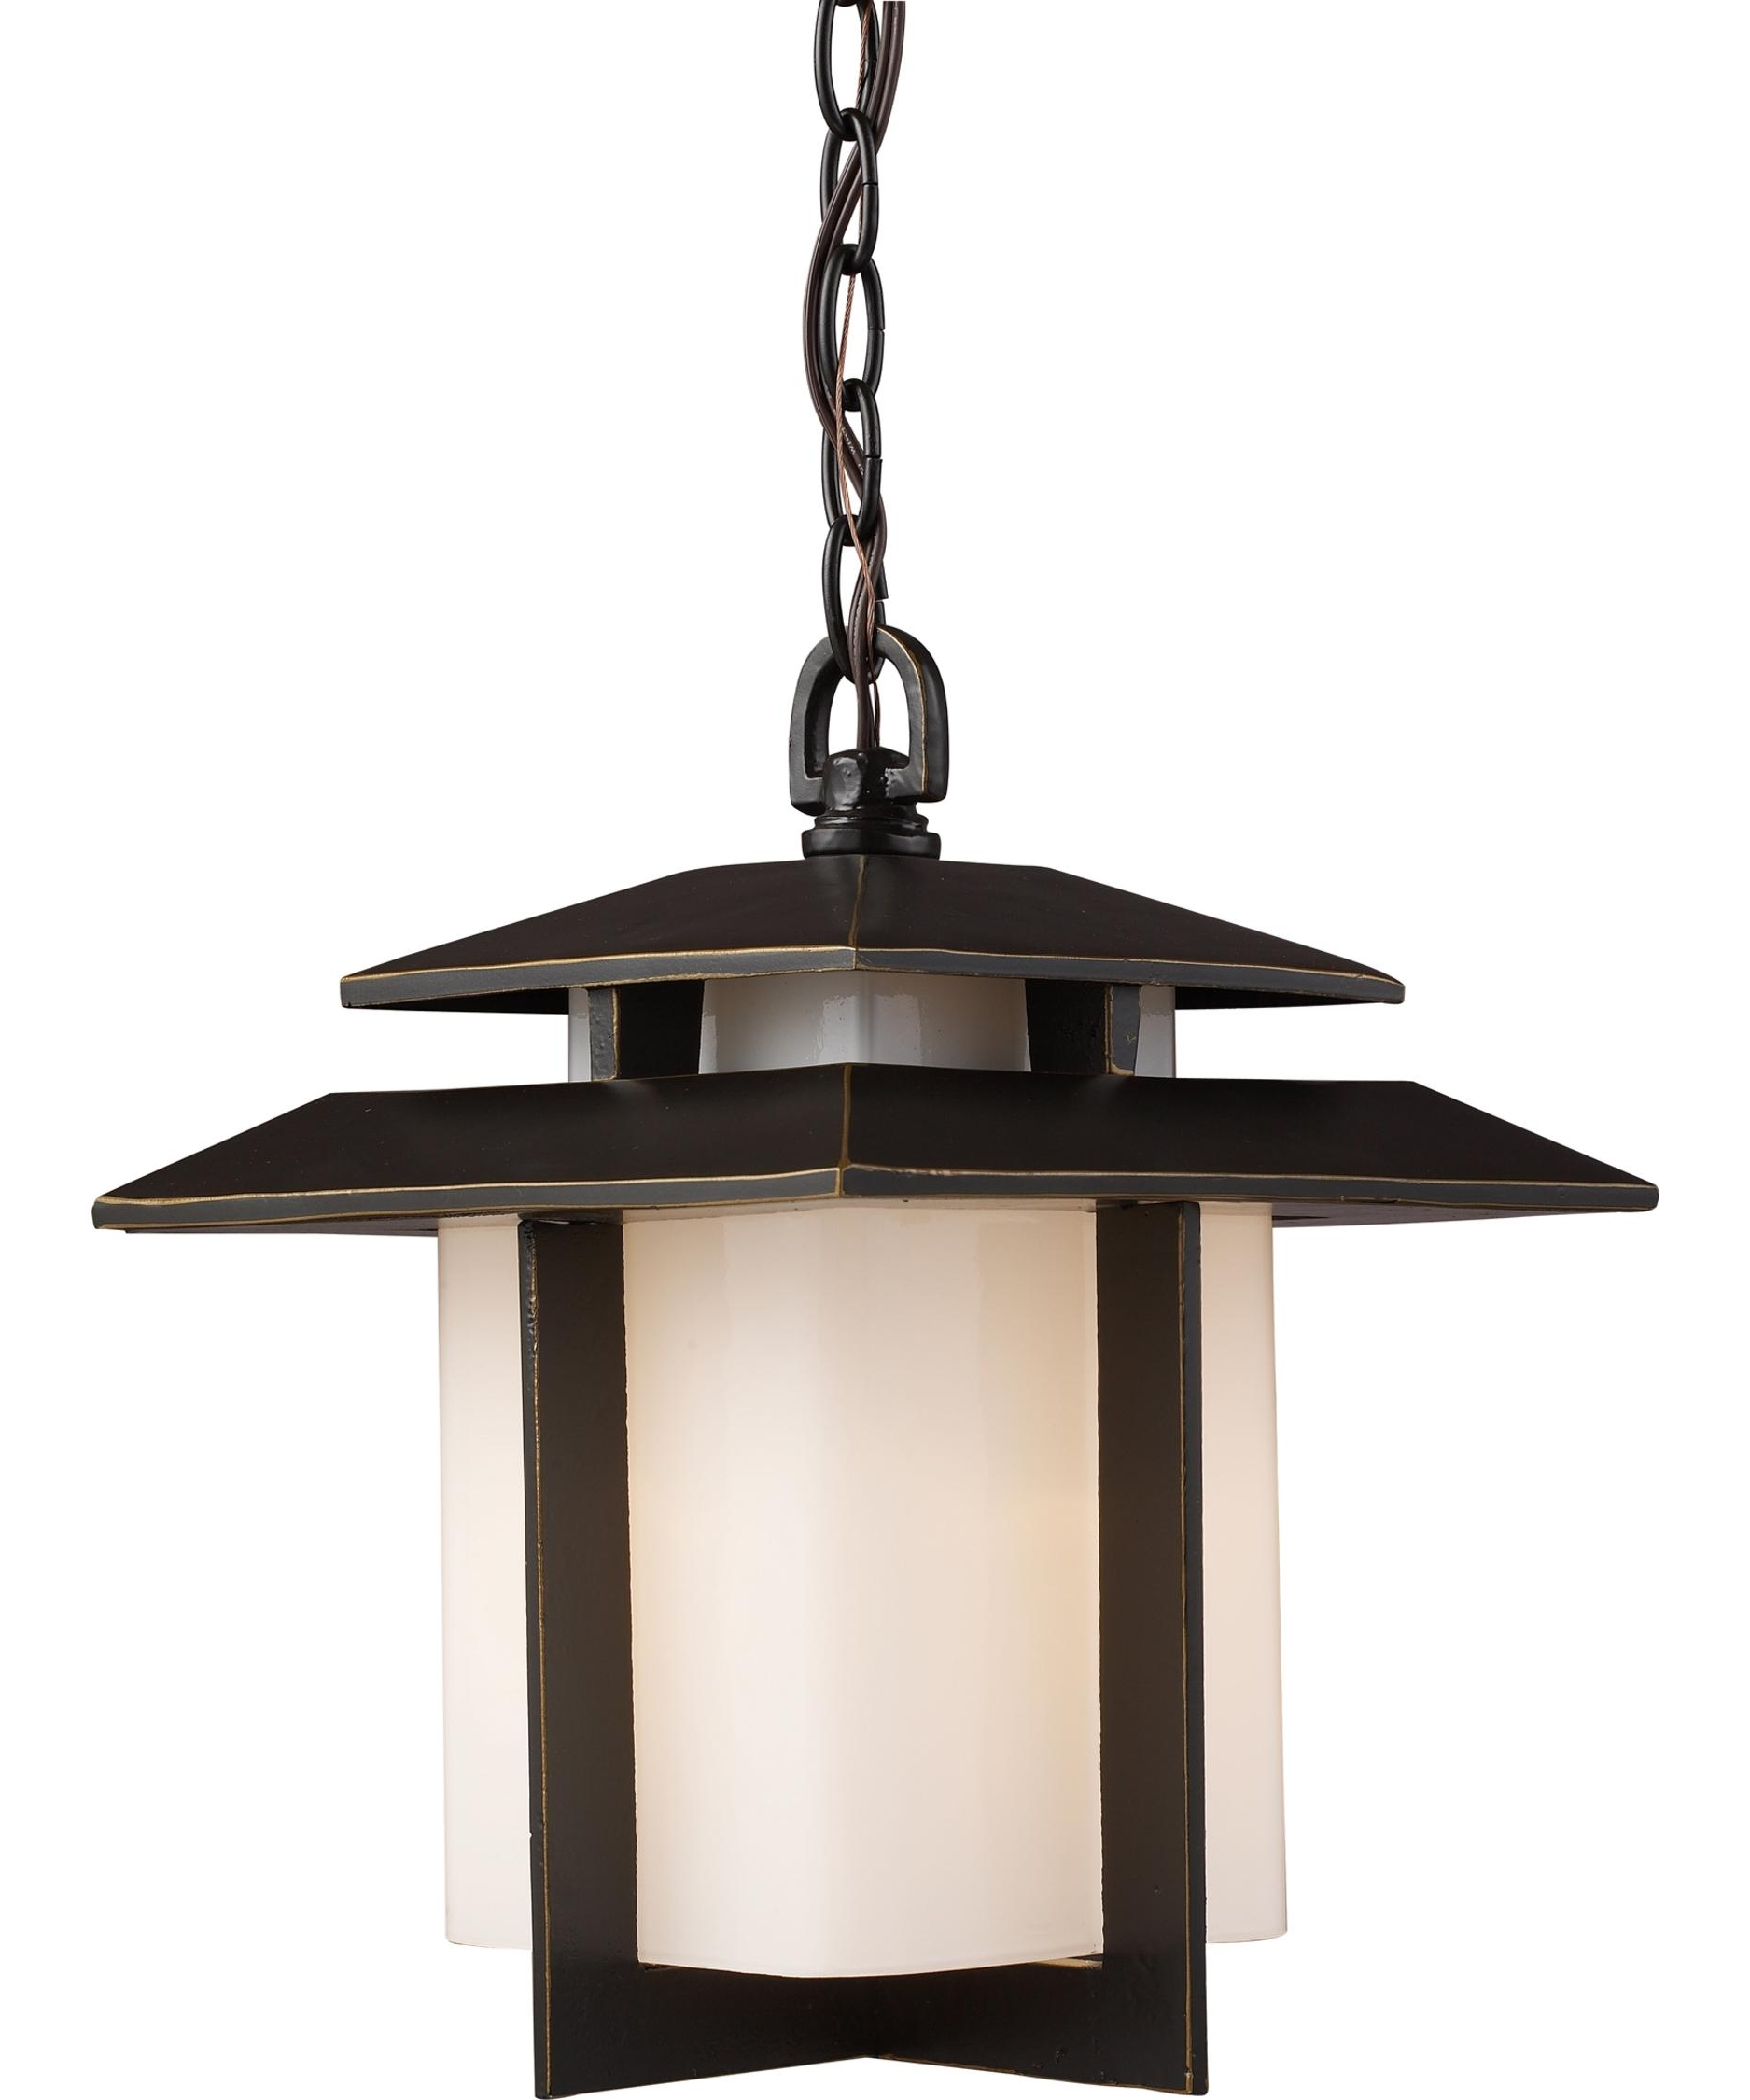 Trendy Light : Outdoor Lighting Ideas Without Electricity Exterior Fixtures Within Electric Outdoor Hanging Lanterns (View 19 of 20)